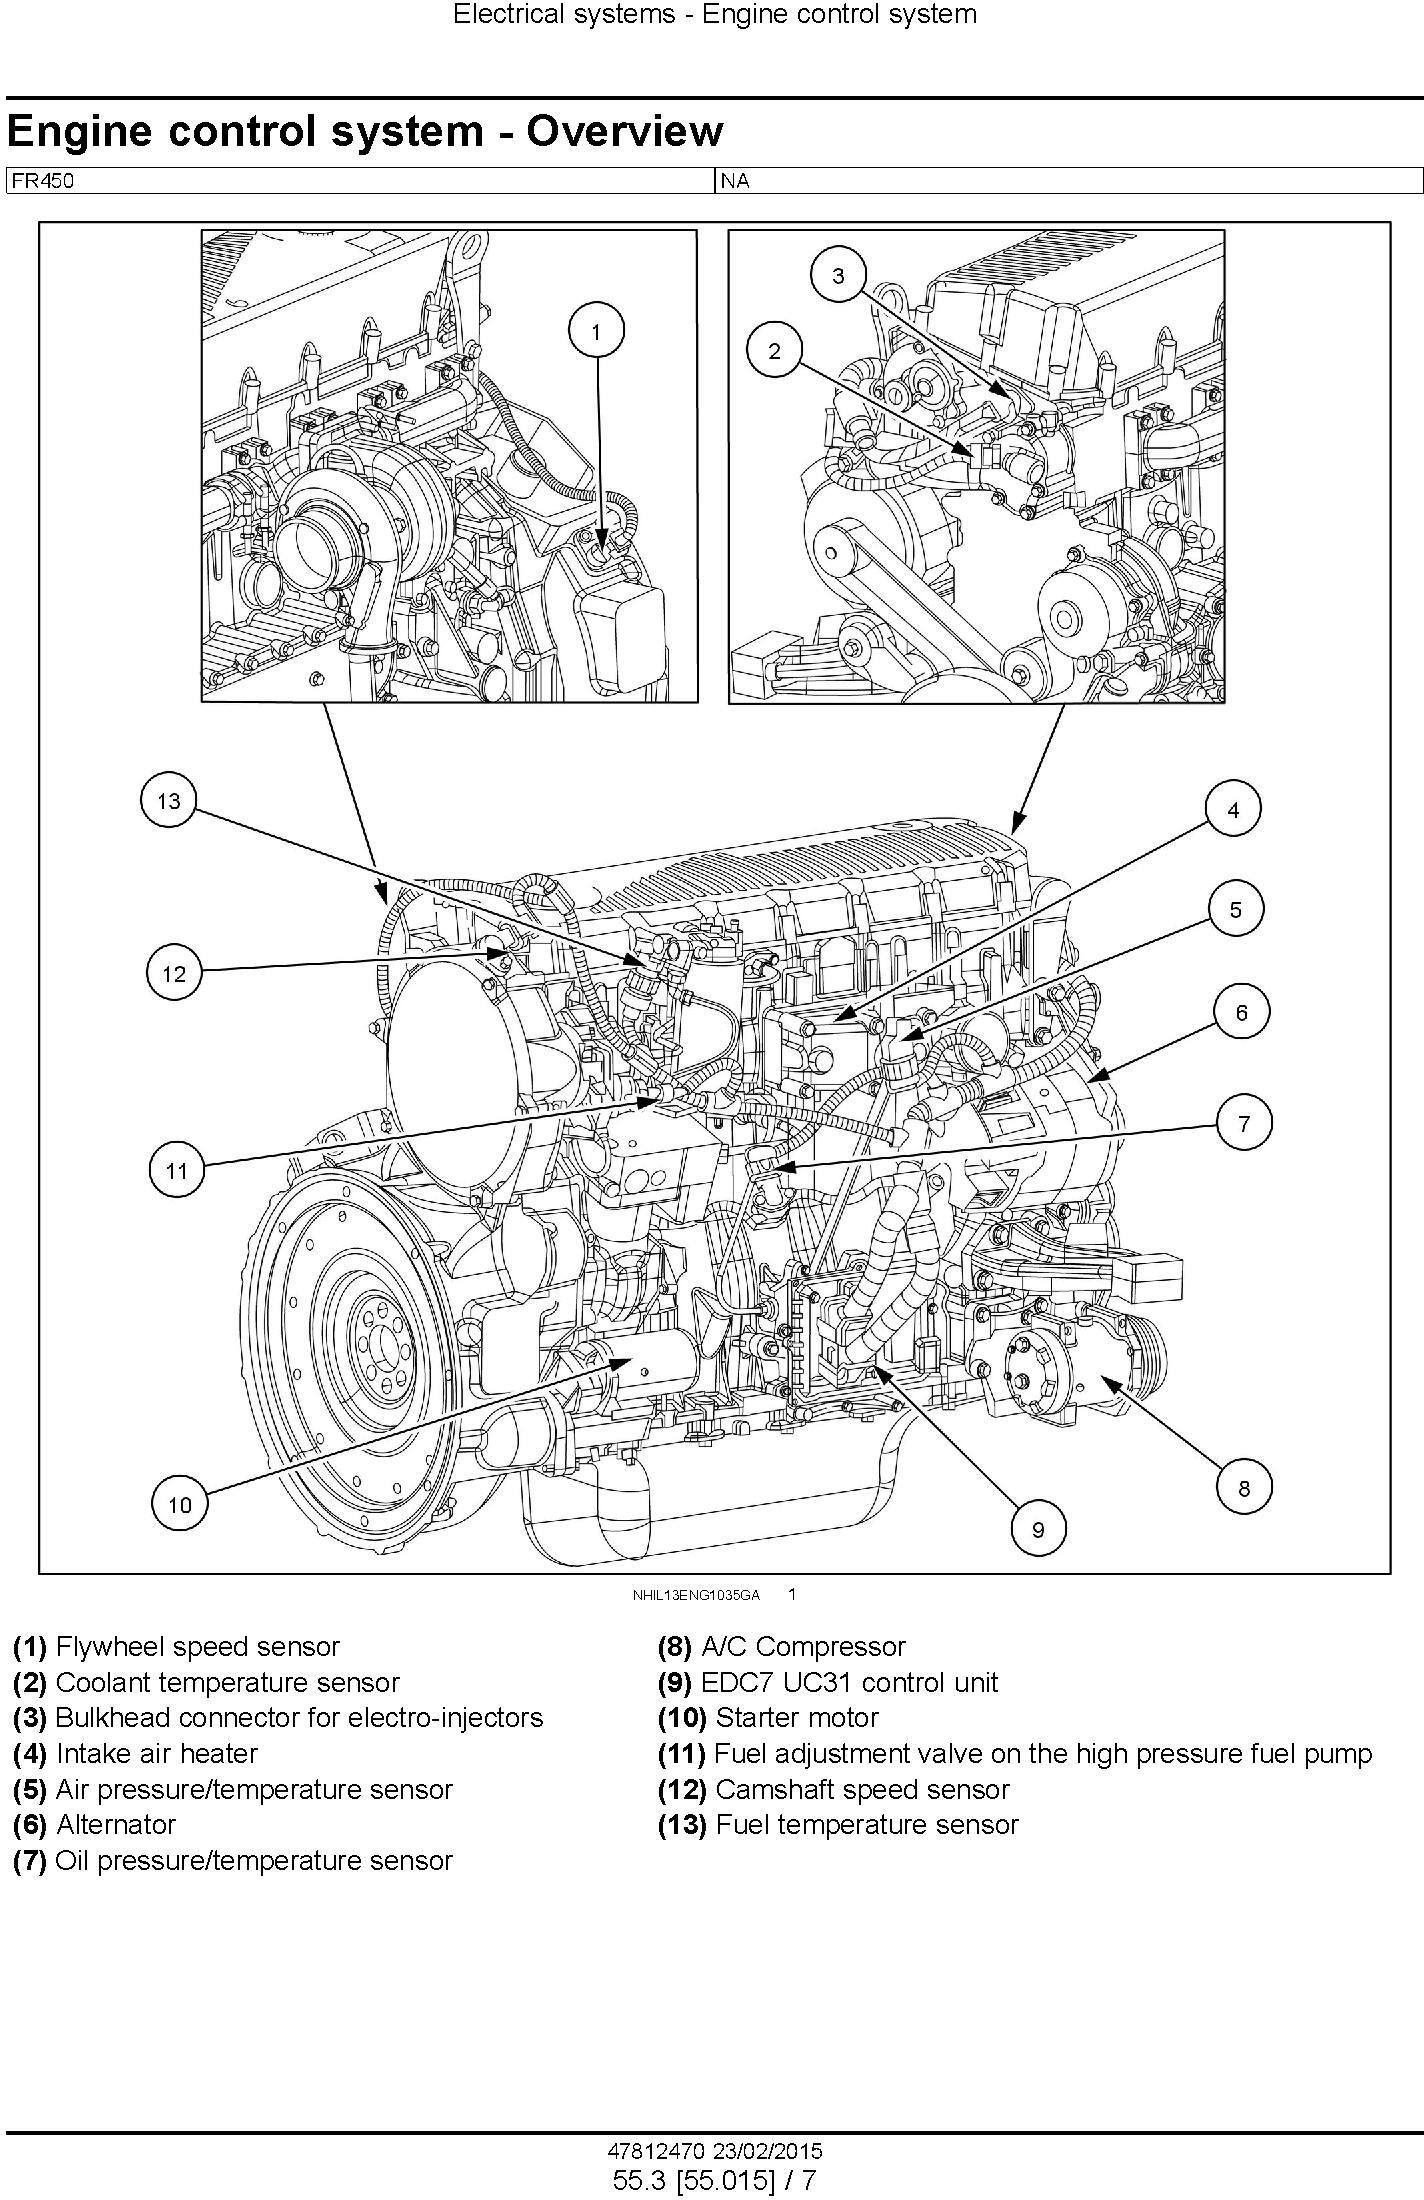 New Holland FR450, FR500, FR600, FR700, FR850 Forage Harvester Complete Service Manual - 3